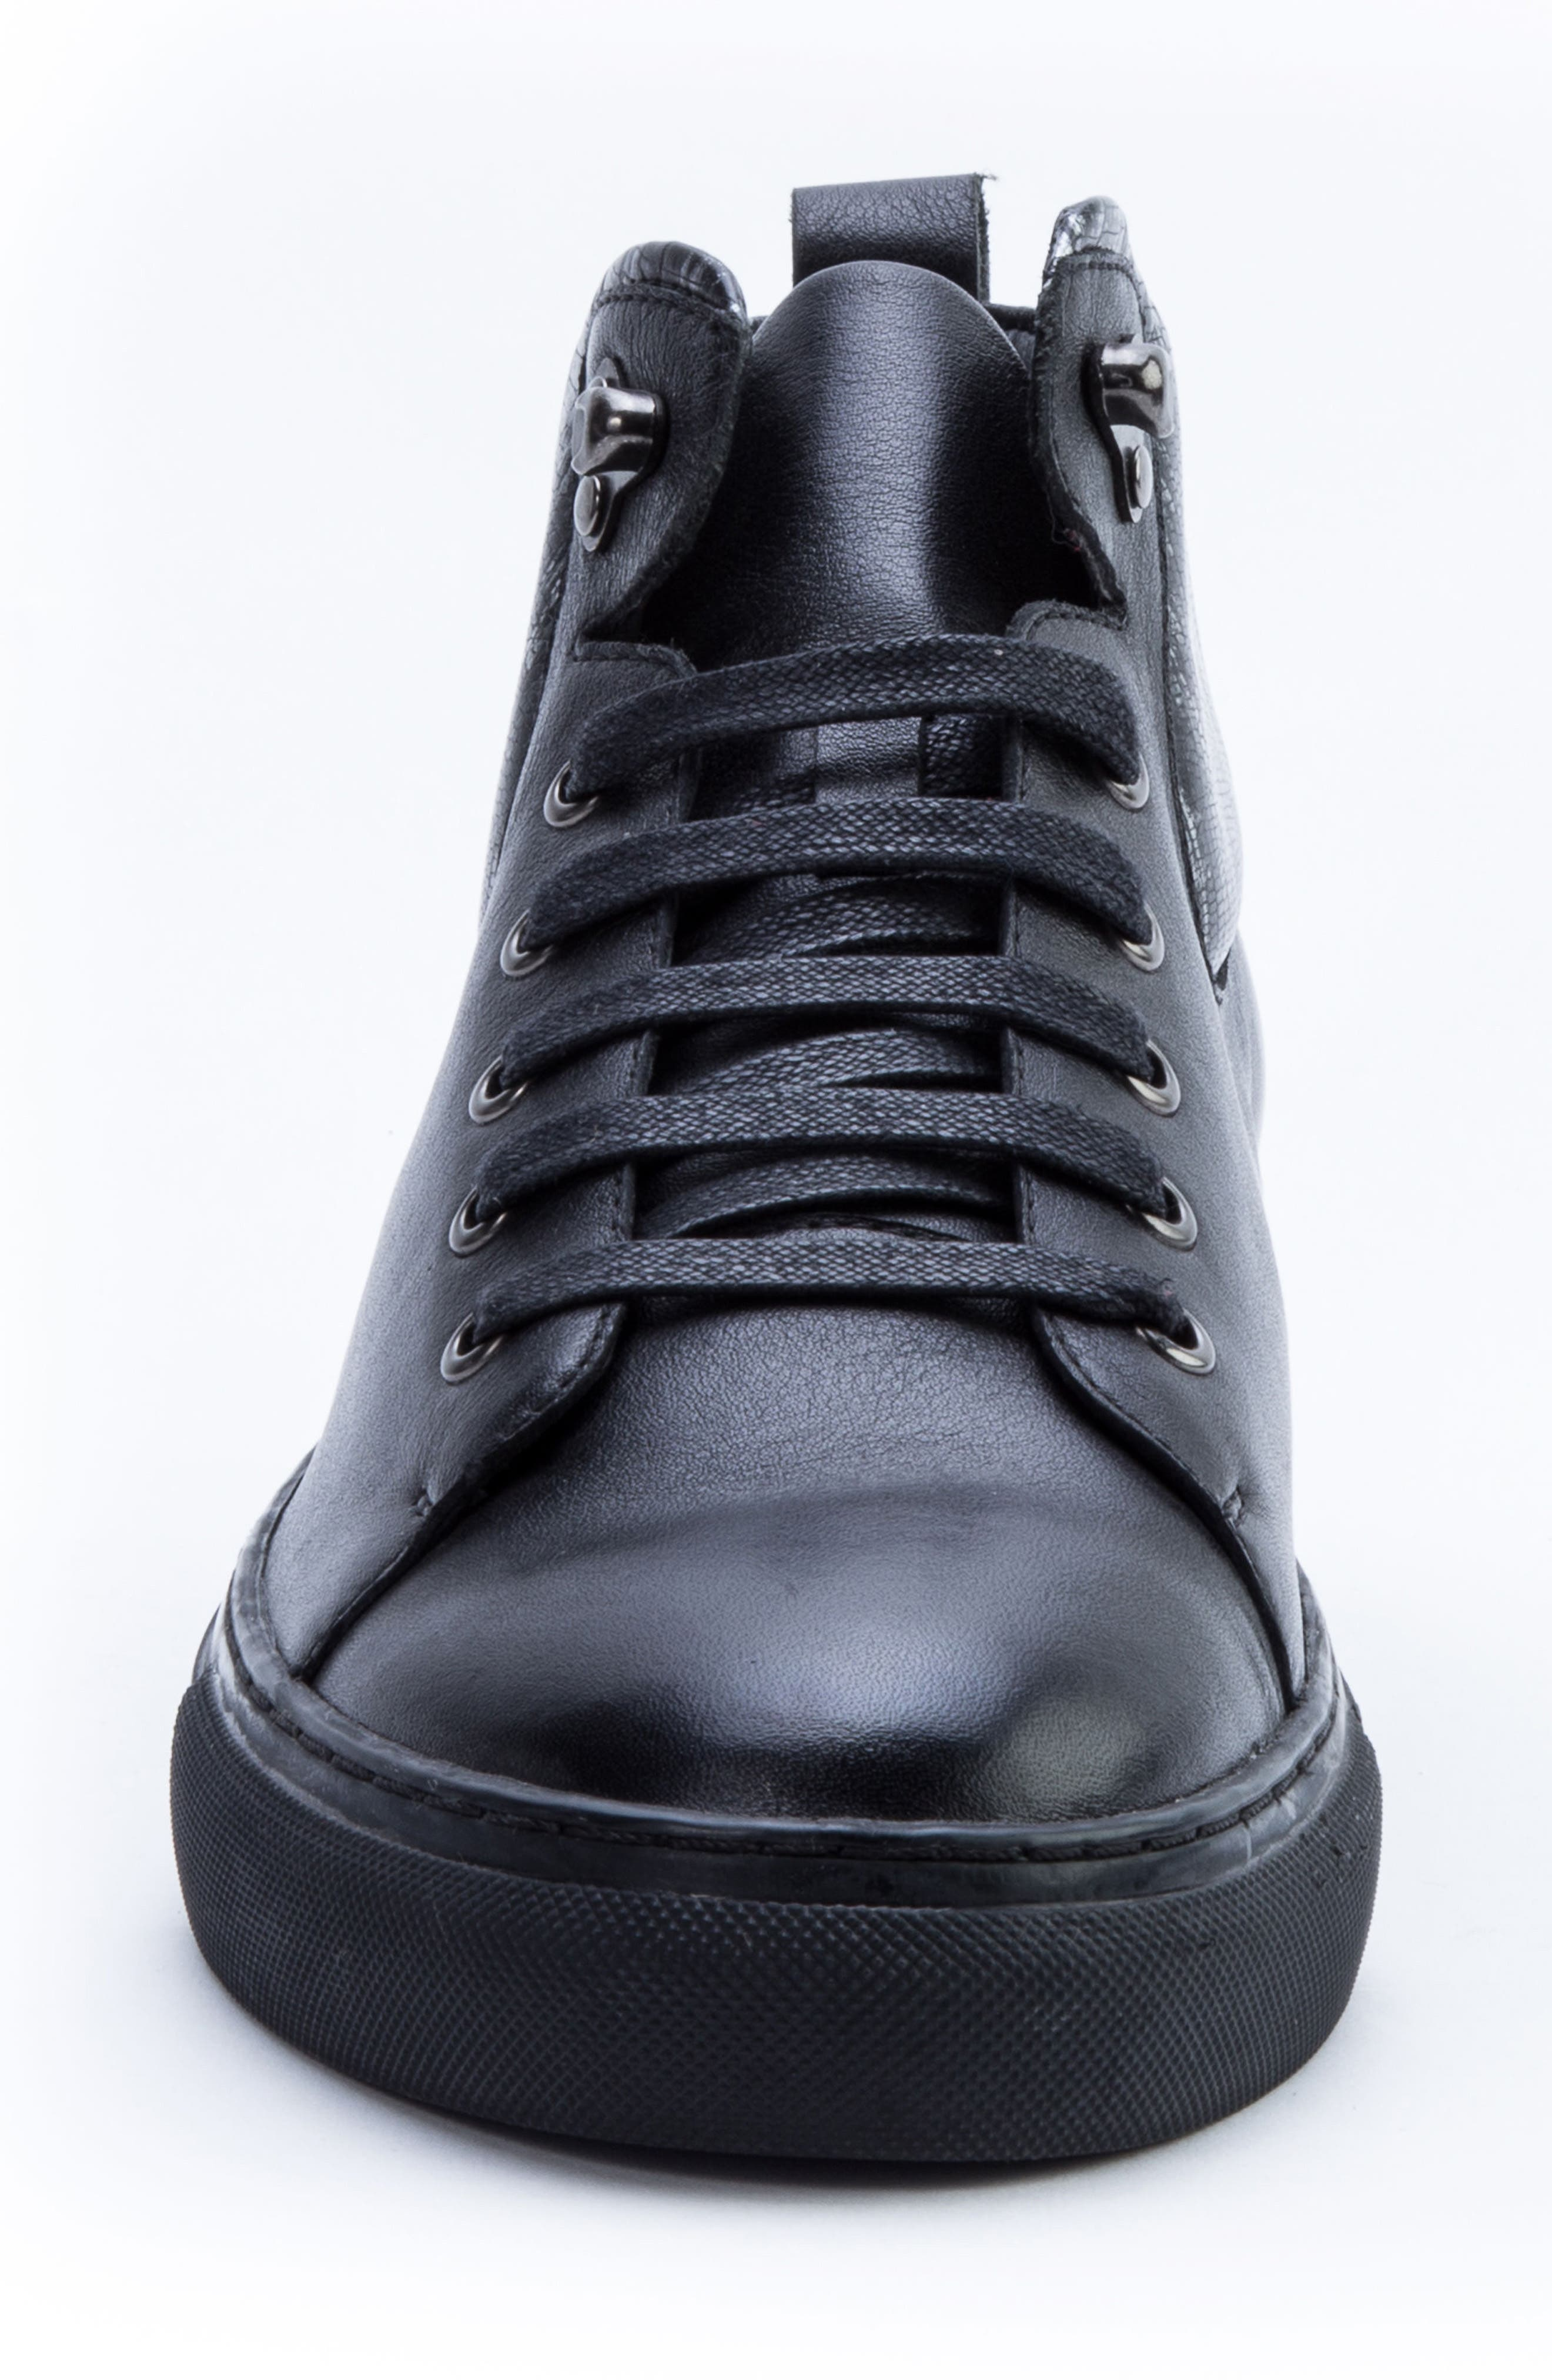 Badgley Mischka Carroll Sneaker,                             Alternate thumbnail 4, color,                             BLACK LEATHER